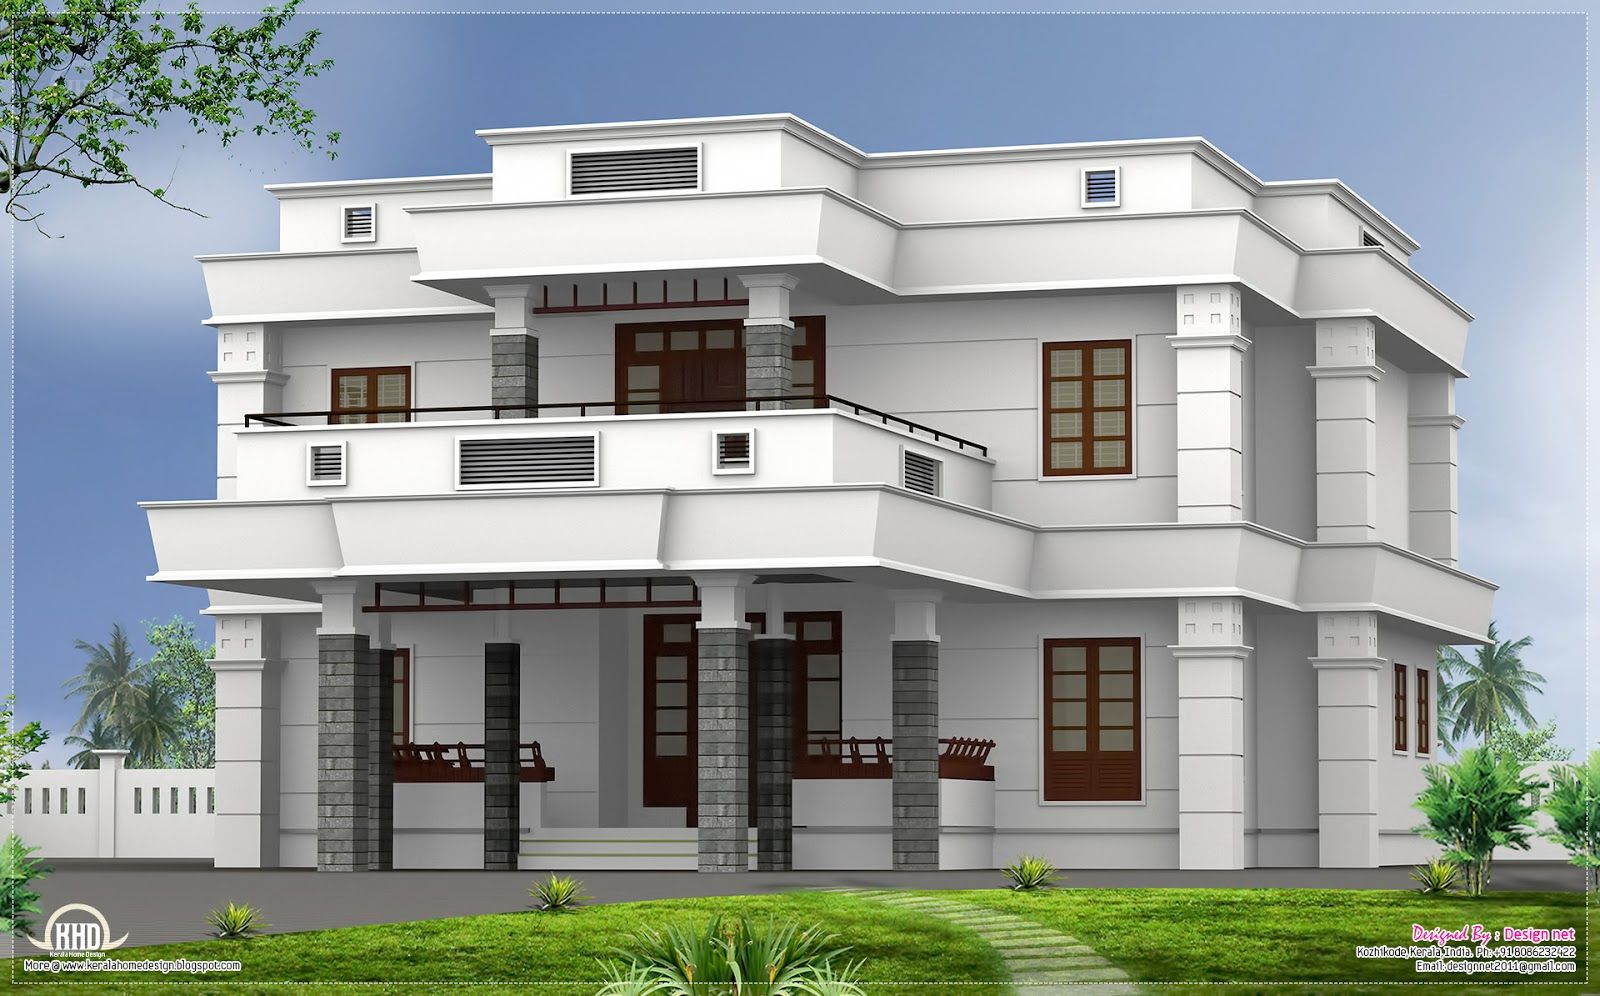 Flat roof homes designs bhk modern flat roof house Contemporary home builder